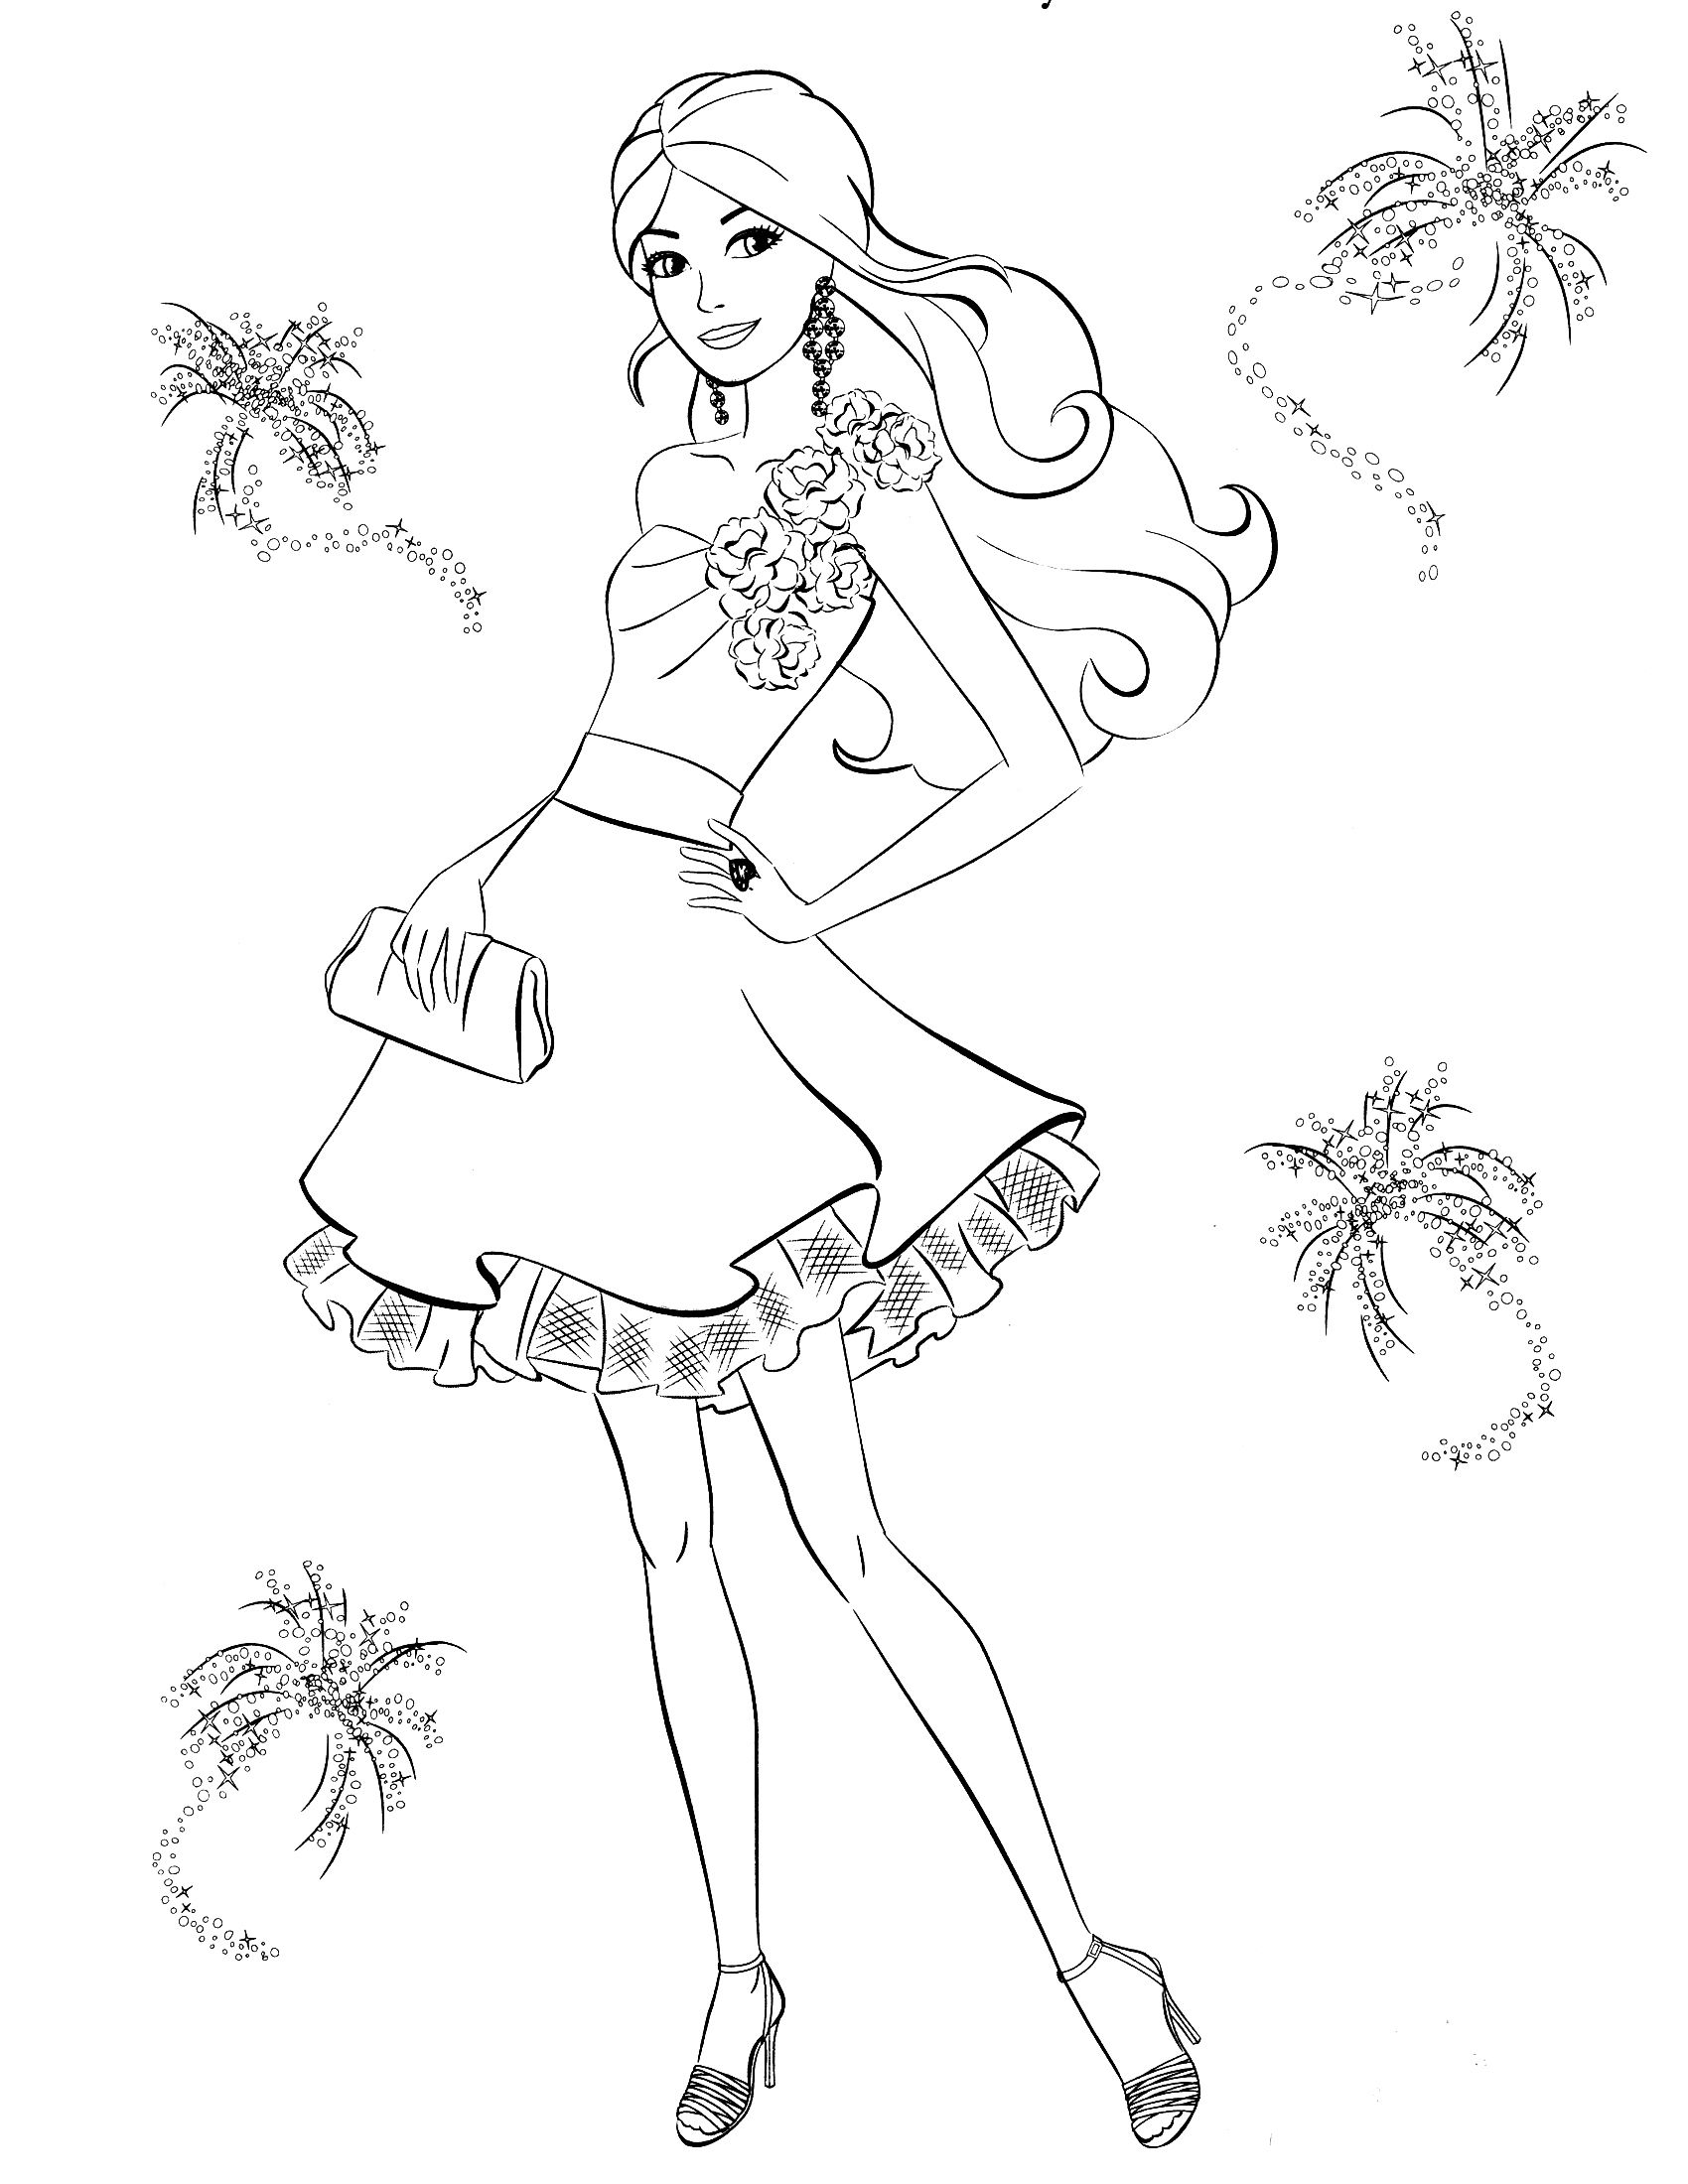 barbie painting coloring pages designs canvas barbie coloring - Barbie Coloring Page